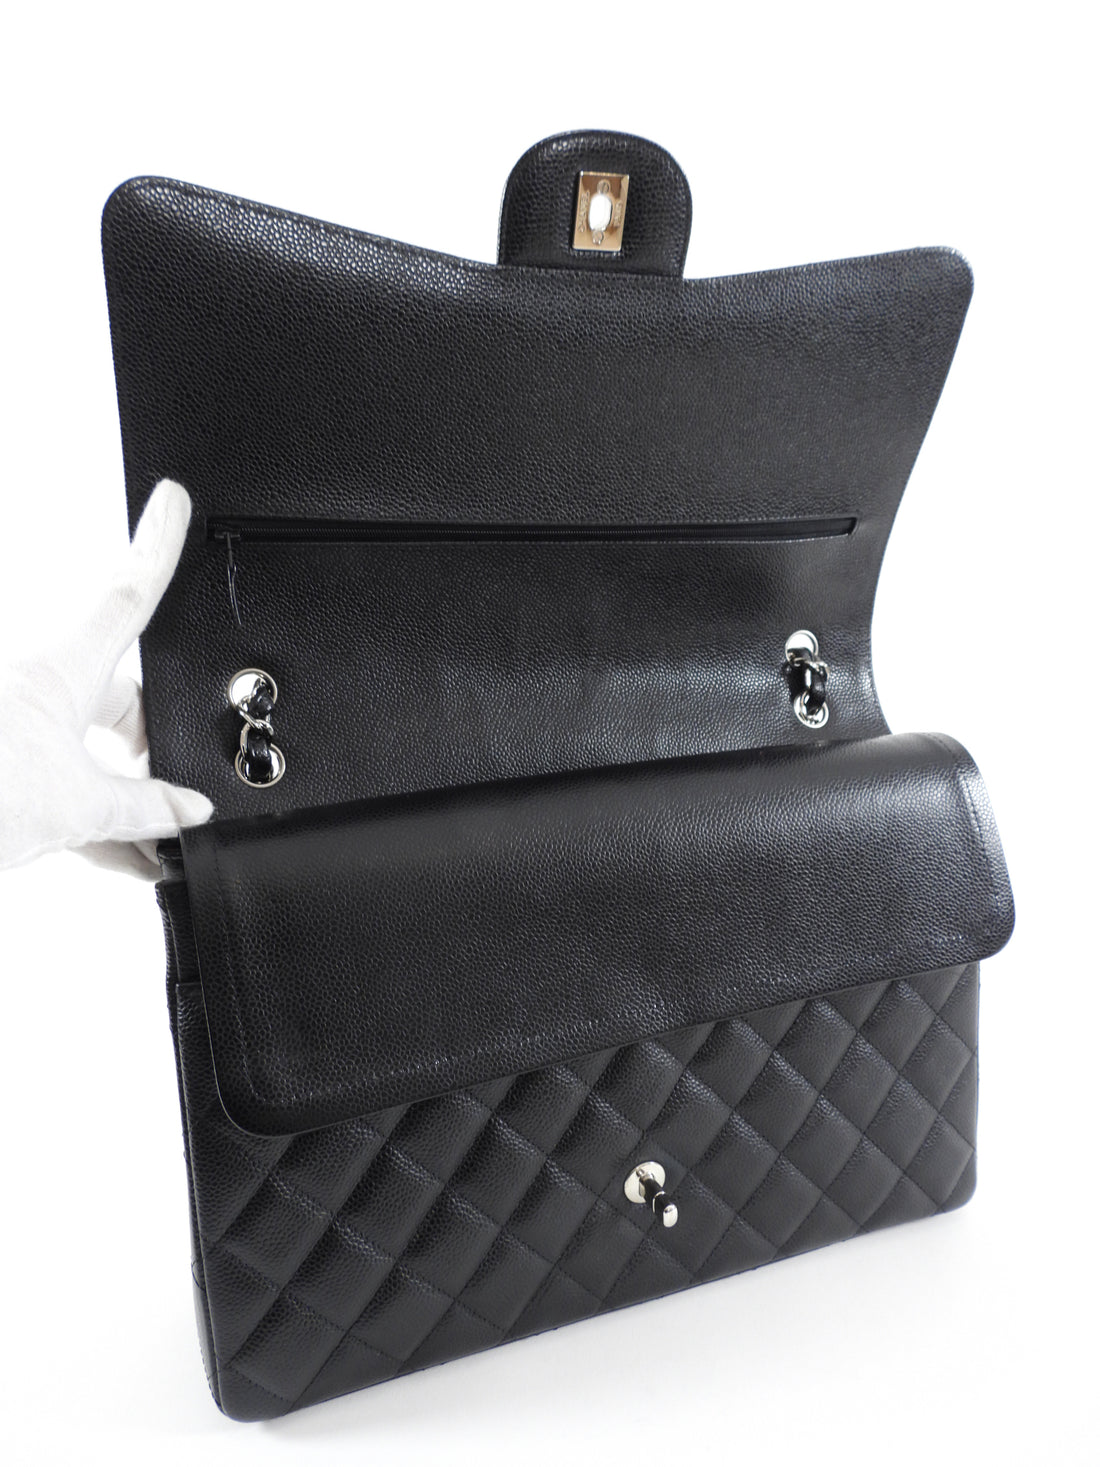 Chanel Black Caviar Maxi Classic Double Flap Bag